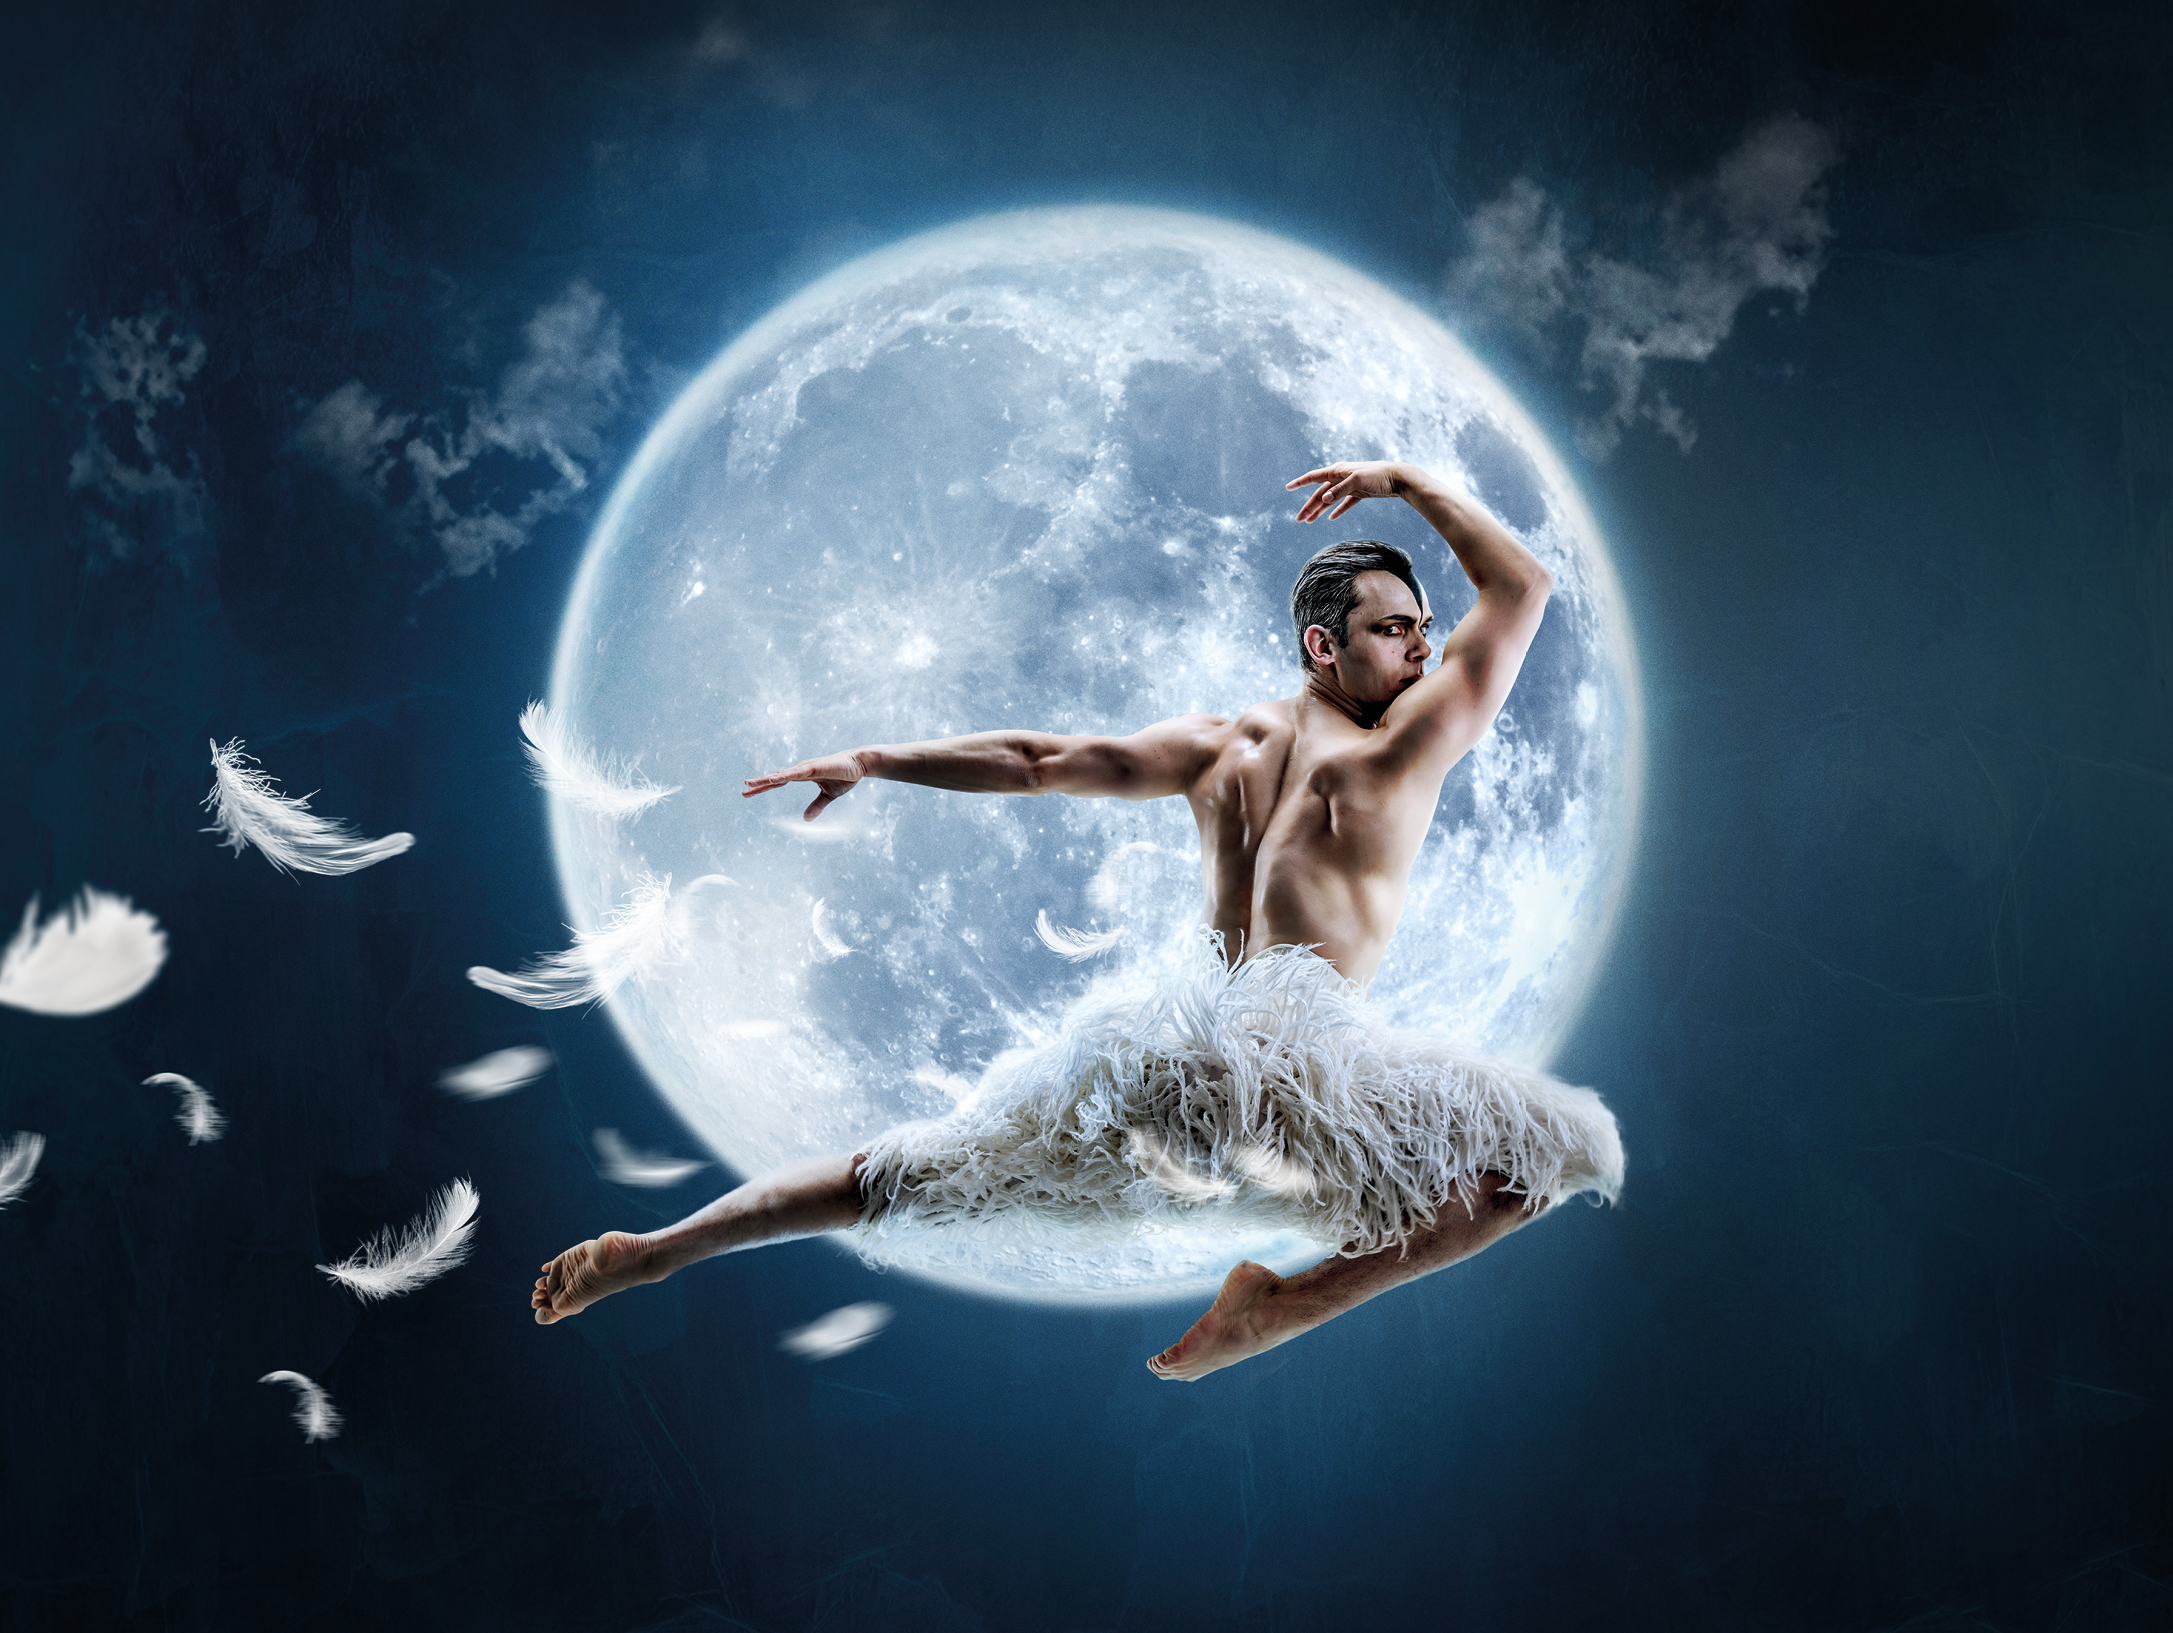 Matthew Bourne's Swan Lake. New Adventures production poster image.